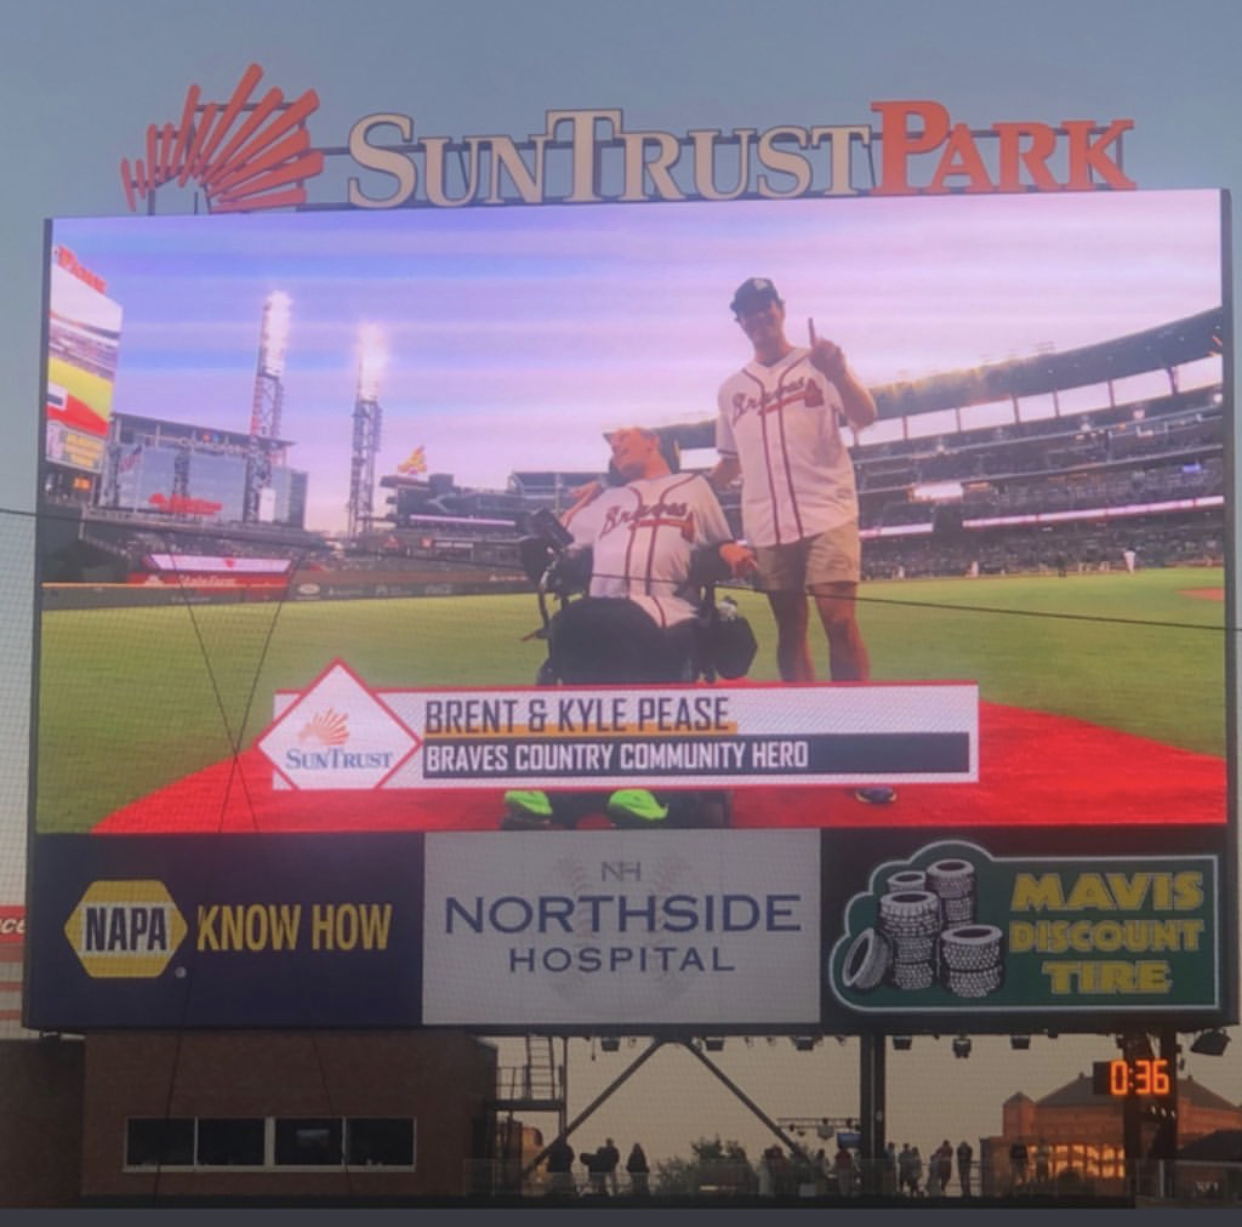 Braves Recognize the Pease Brothers and Launch their New